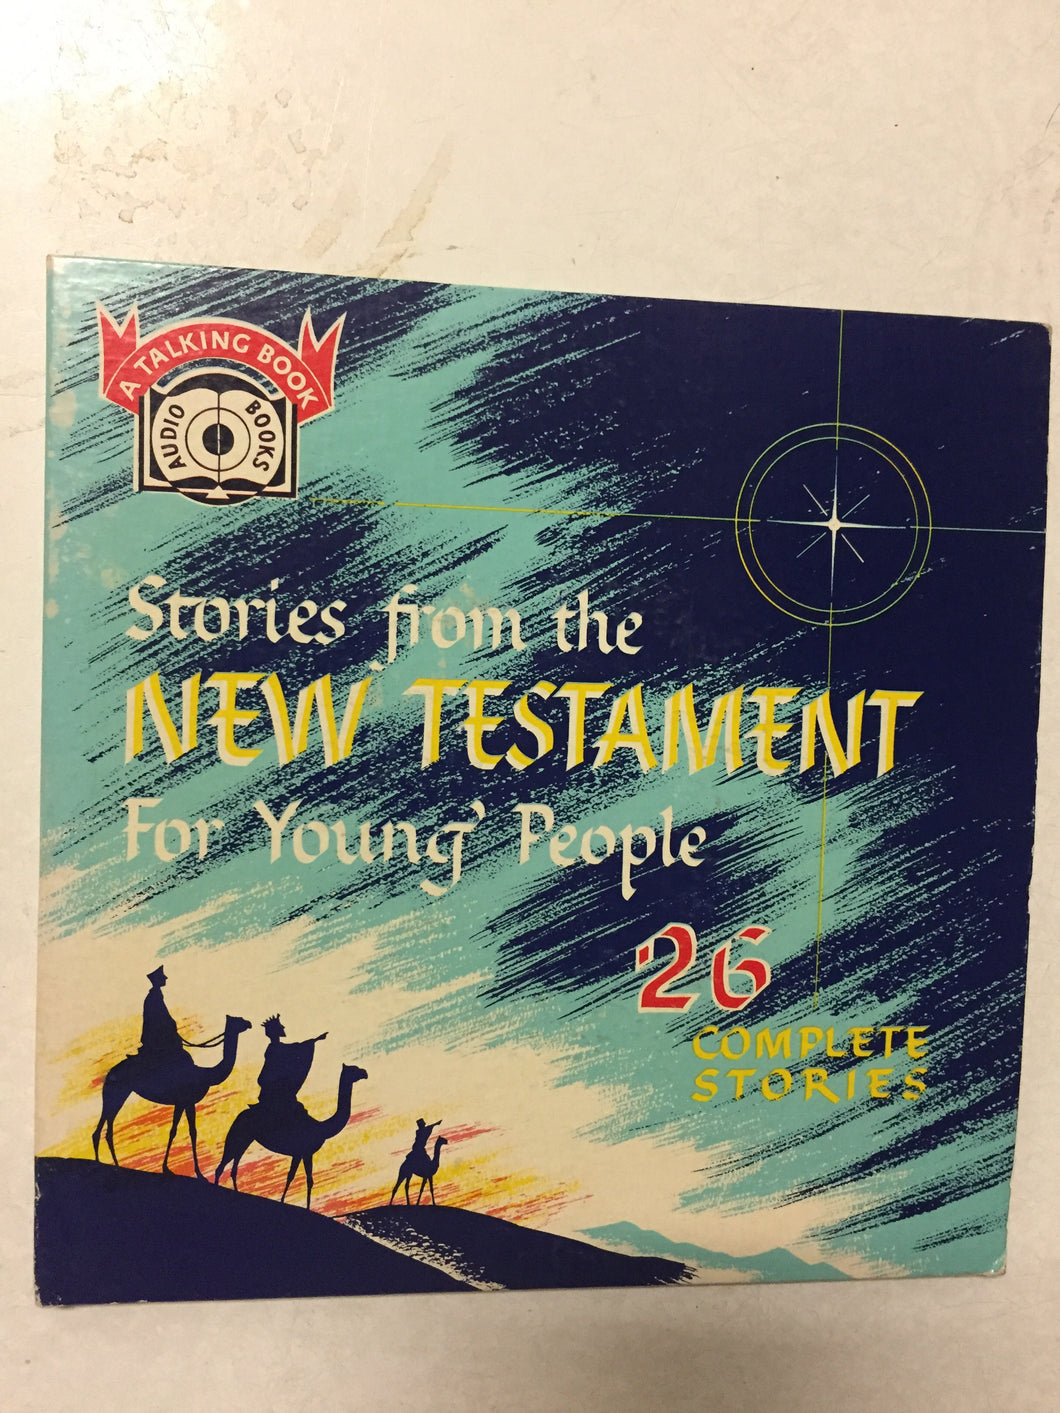 Stories From the New Testament For Young People 26 Complete Stories - Slickcatbooks